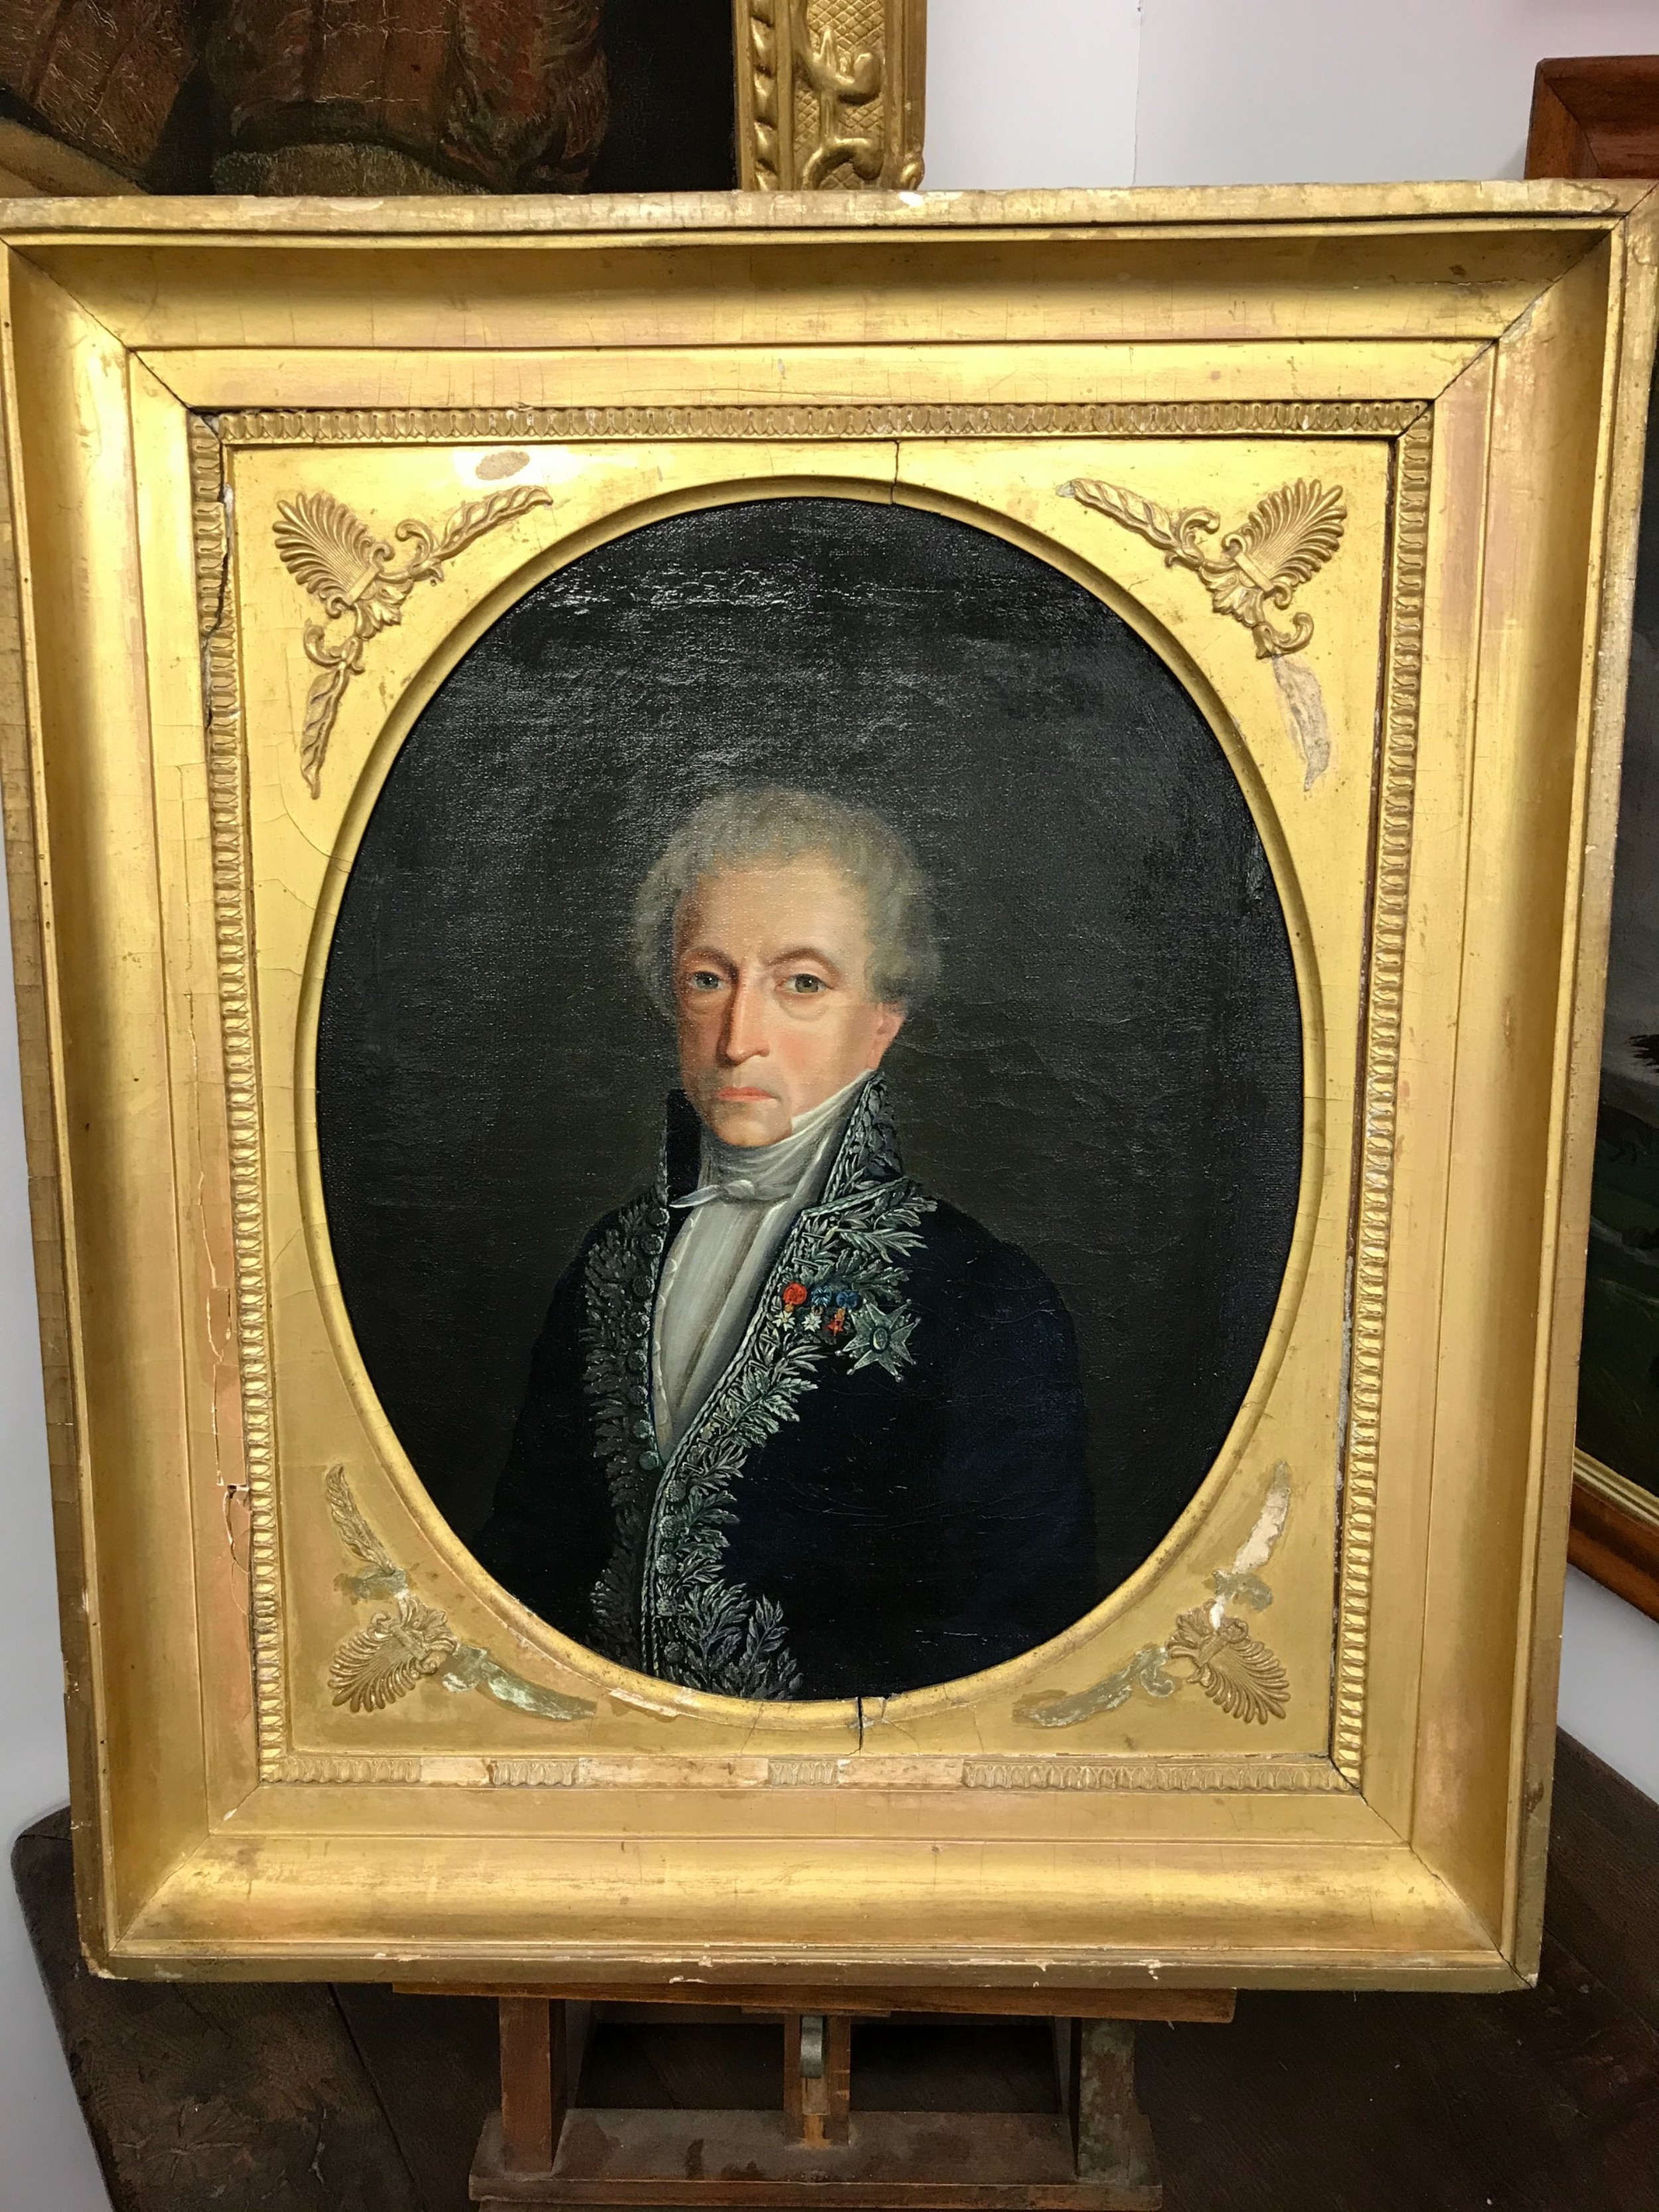 19th century portrait of a french nobleman